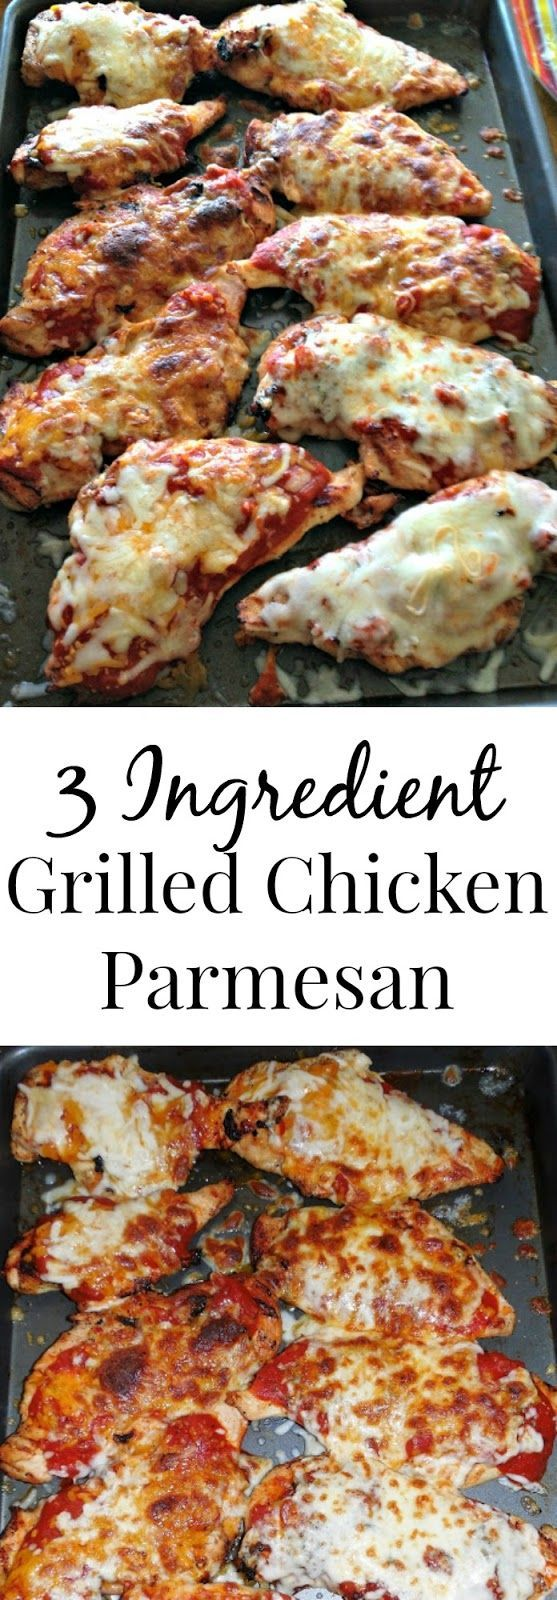 Visit 3 Ingredient Grilled Chicken Parmesan- easy and delicious! Much healthier than the breaded and fried version. www.nutritionistreviews.com